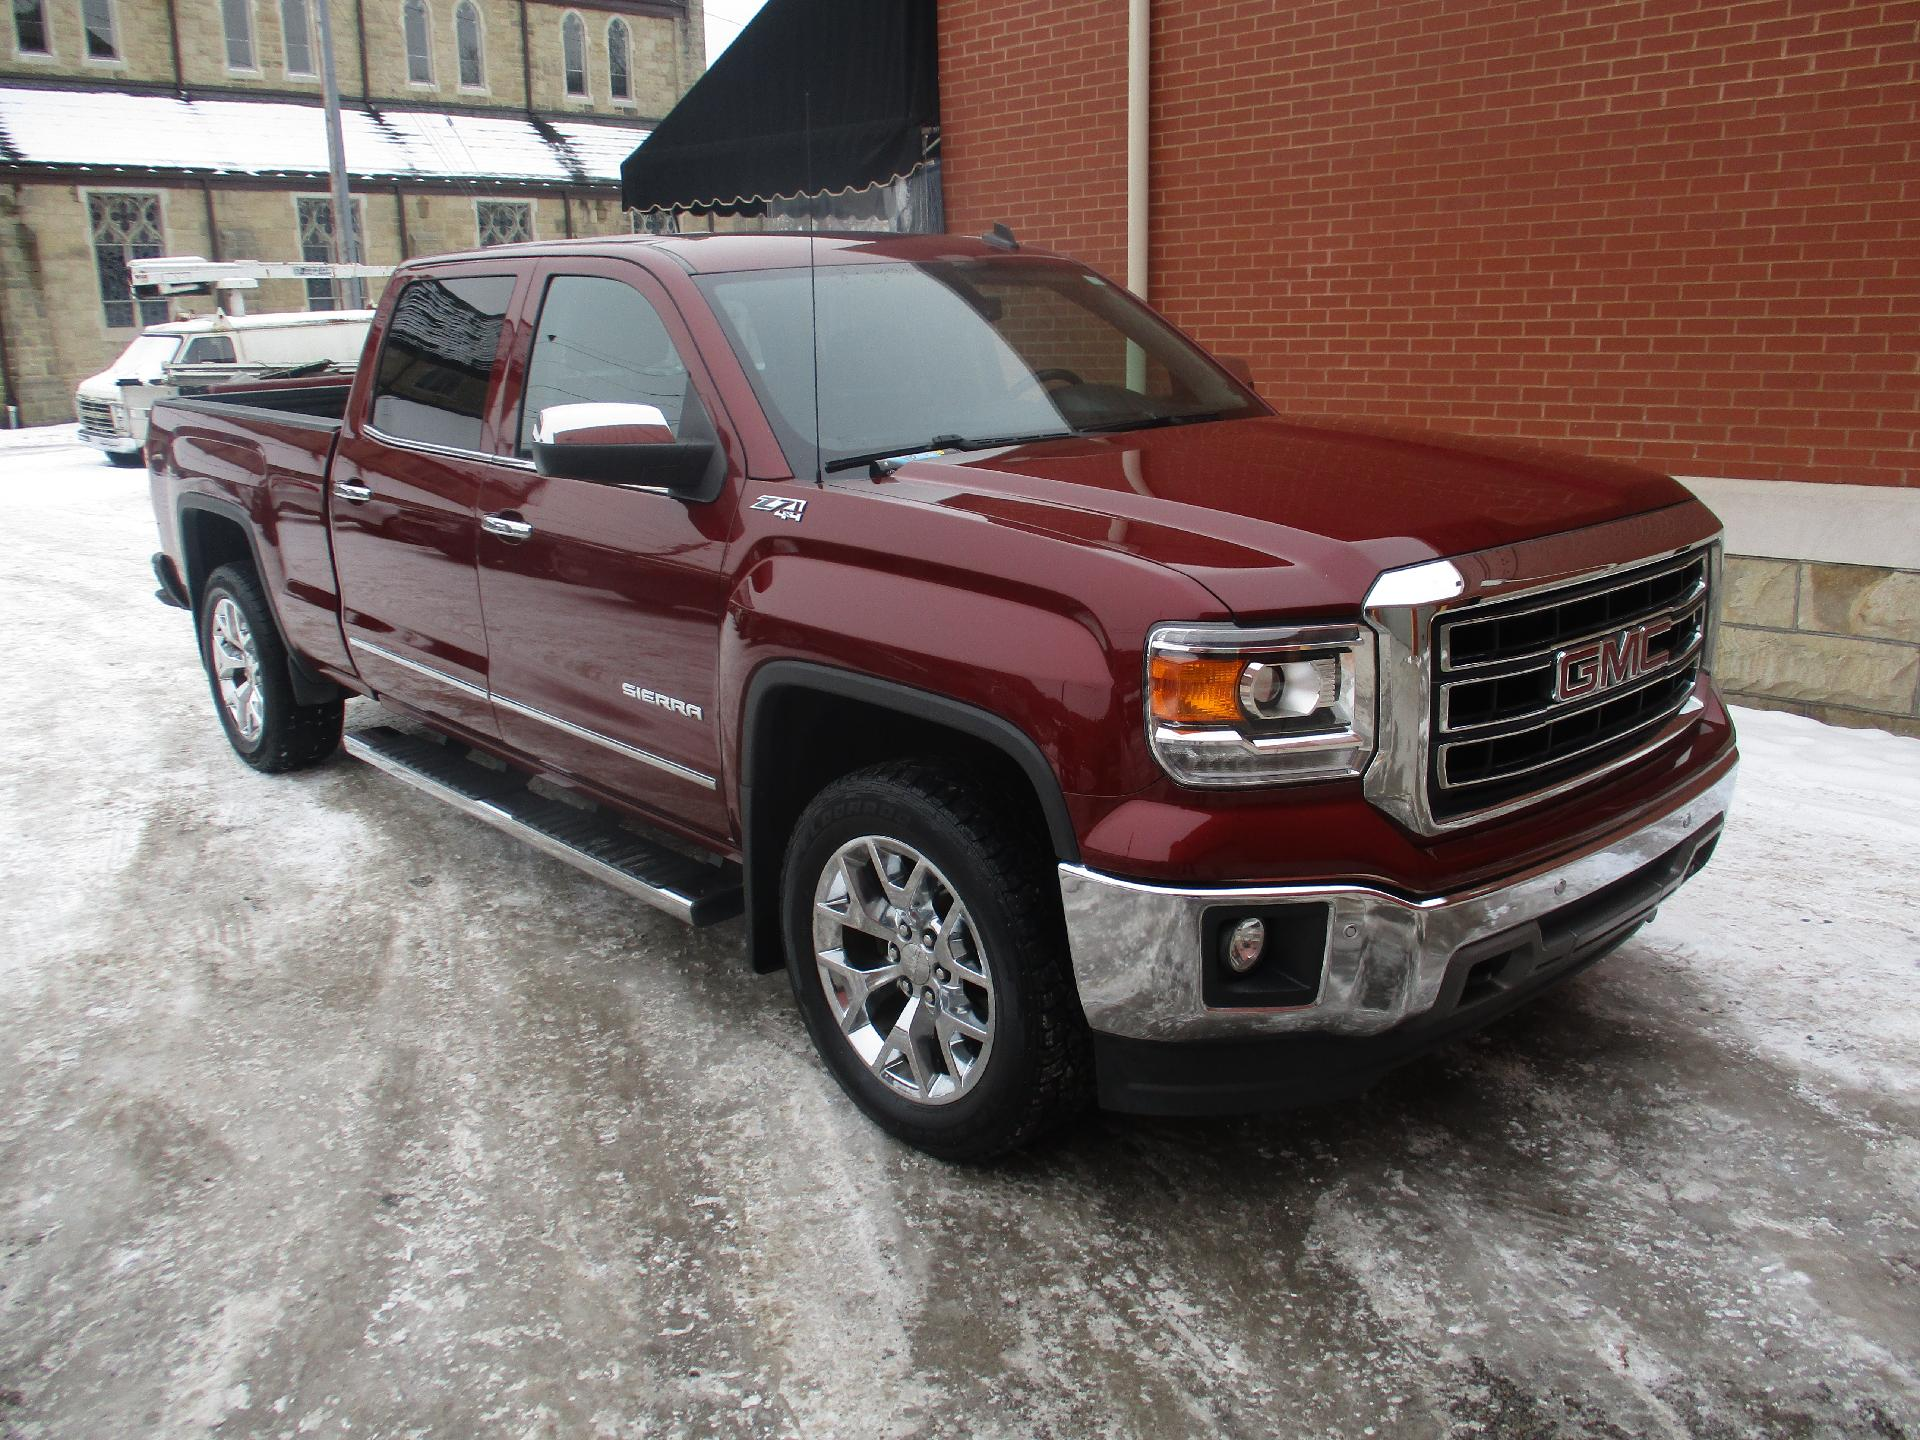 2014 GMC Sierra 1500 Vehicle Photo in Kittanning, PA 16201